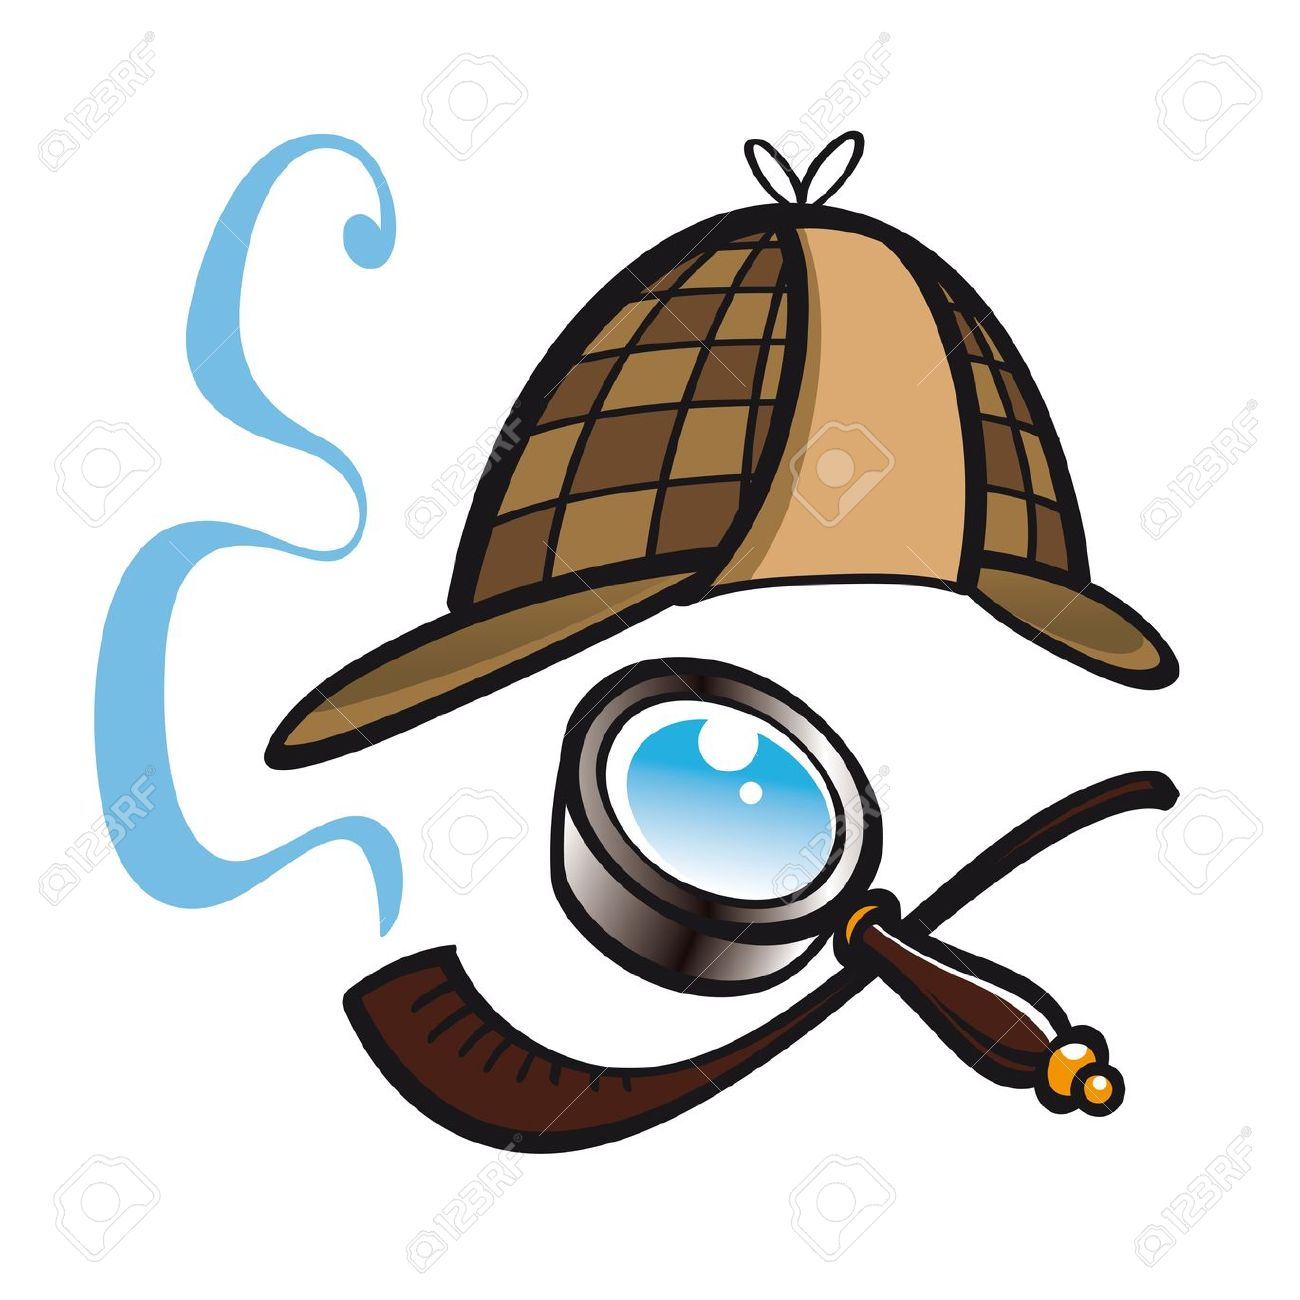 sherlock holmes cartoon images sherlock holmes clipart clipground 9294